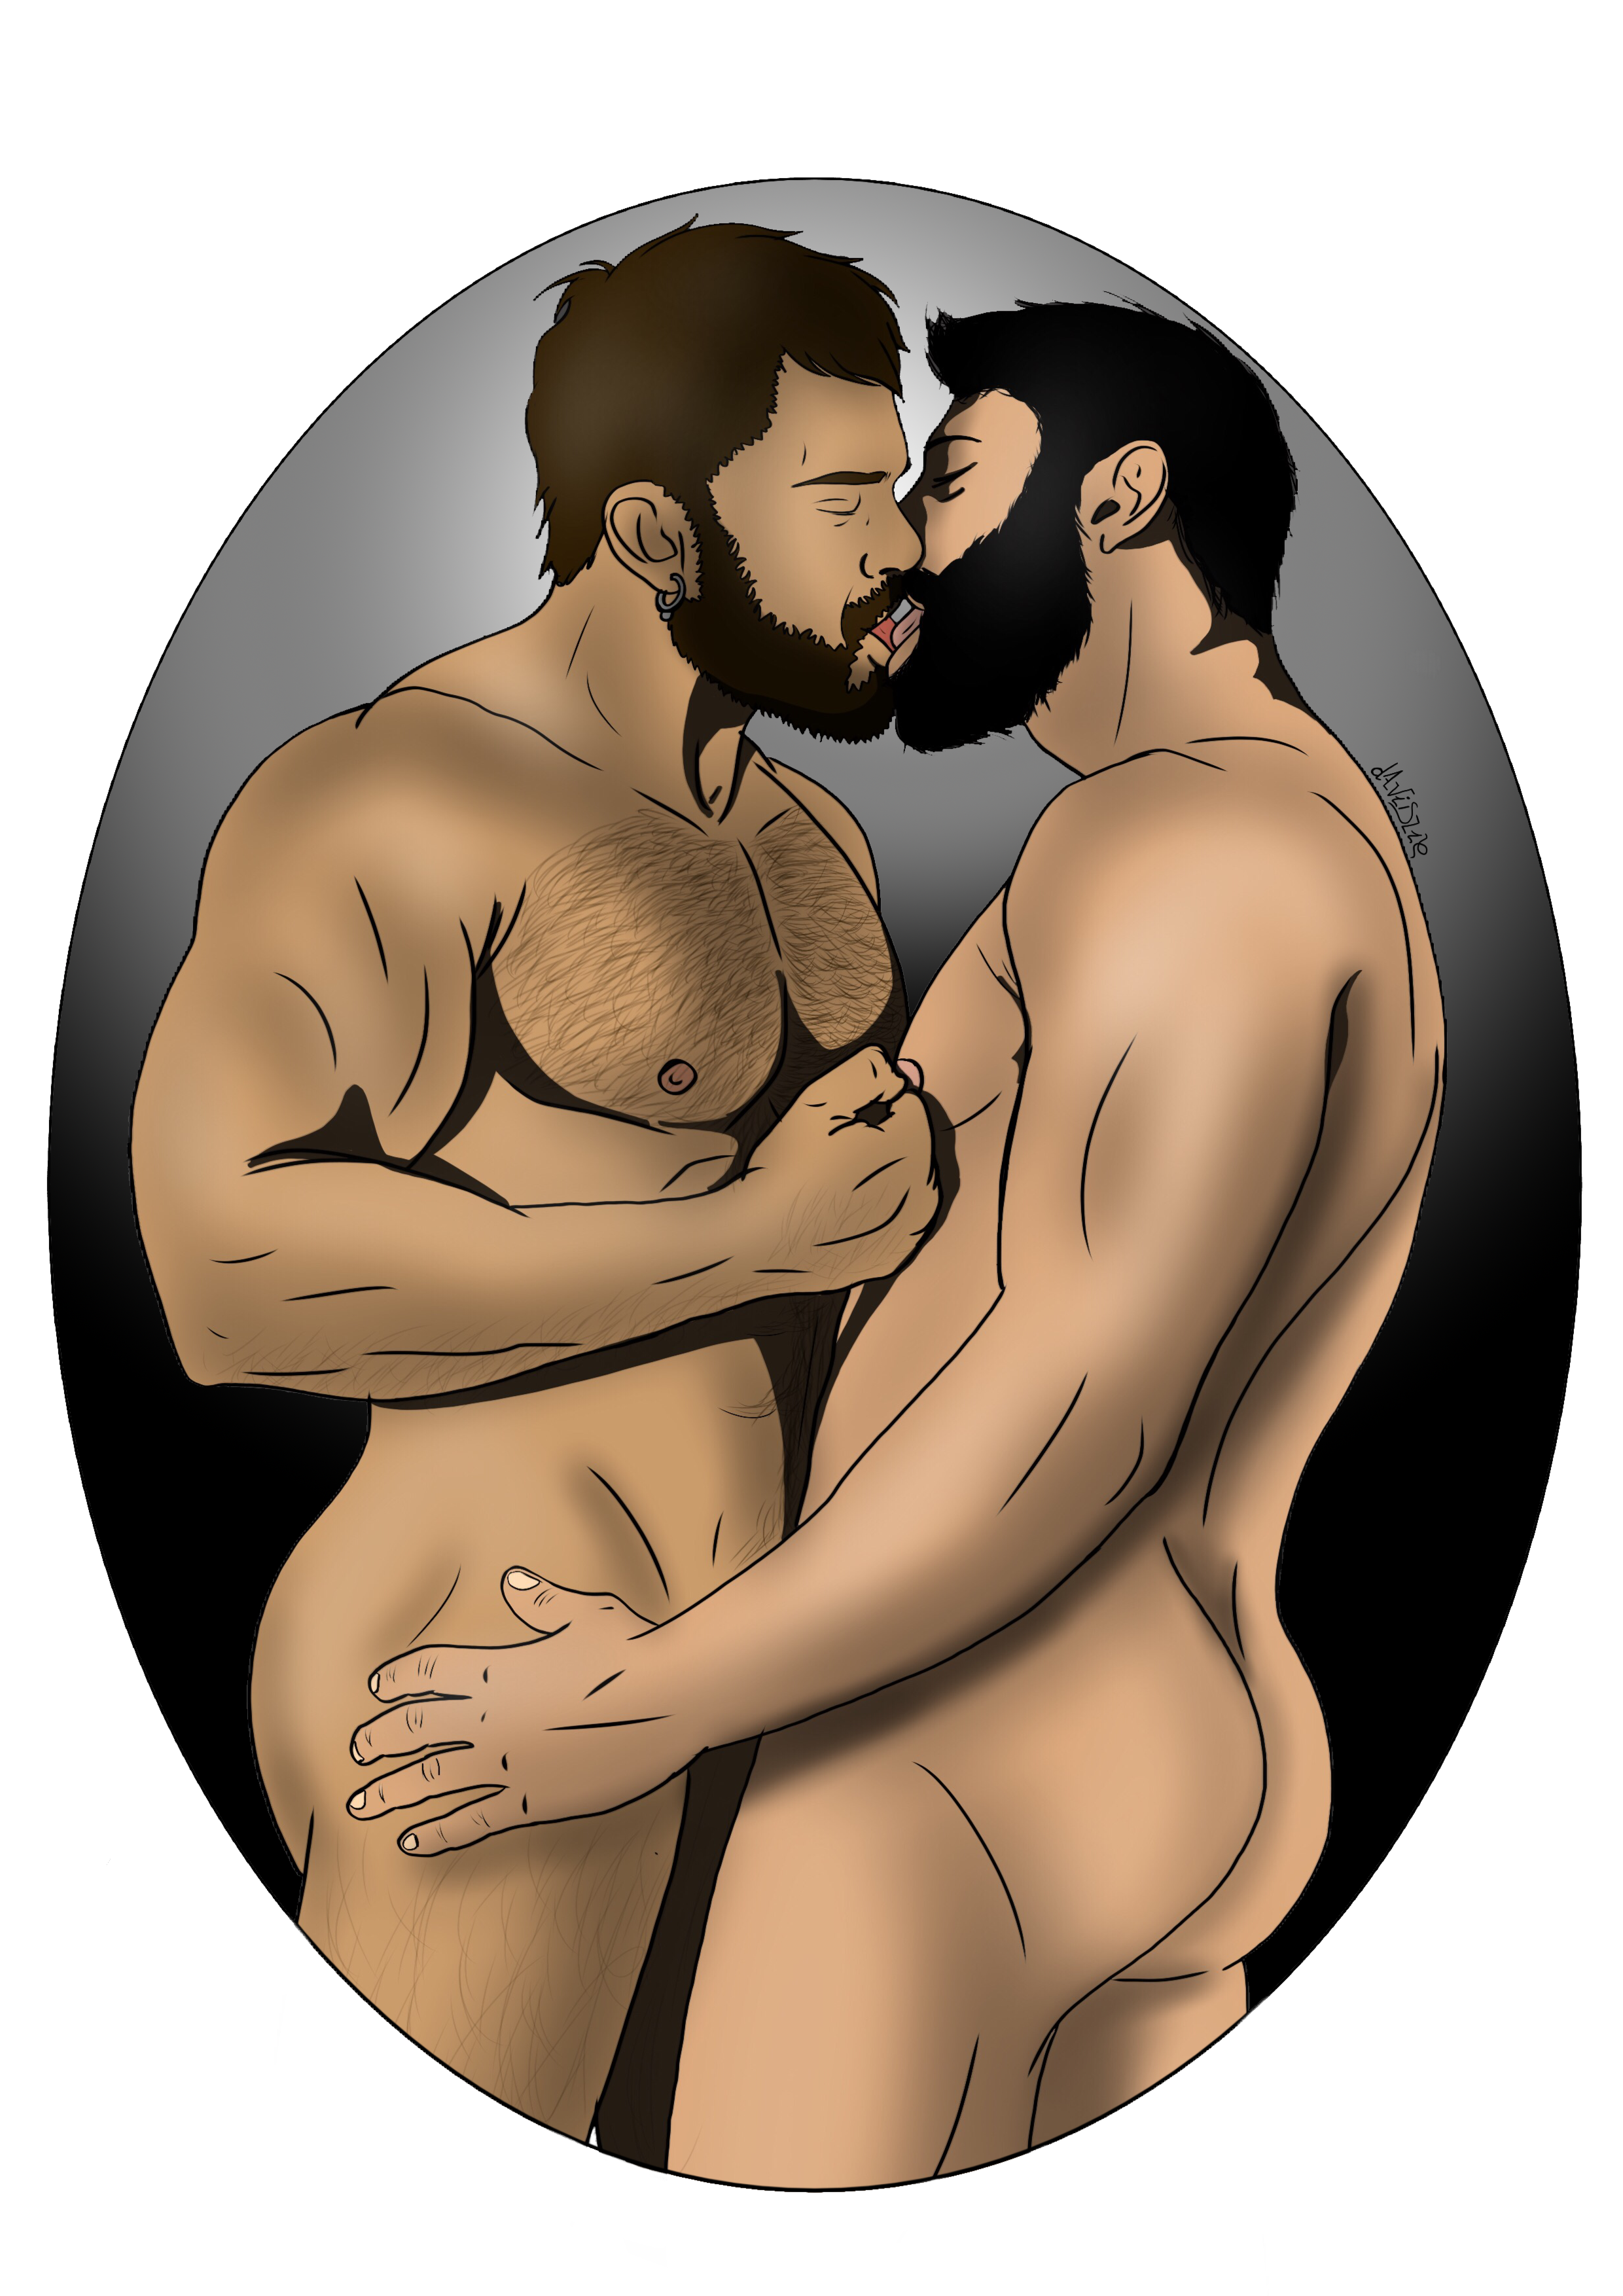 Naked_Kiss_David_Pallás_Gozalo